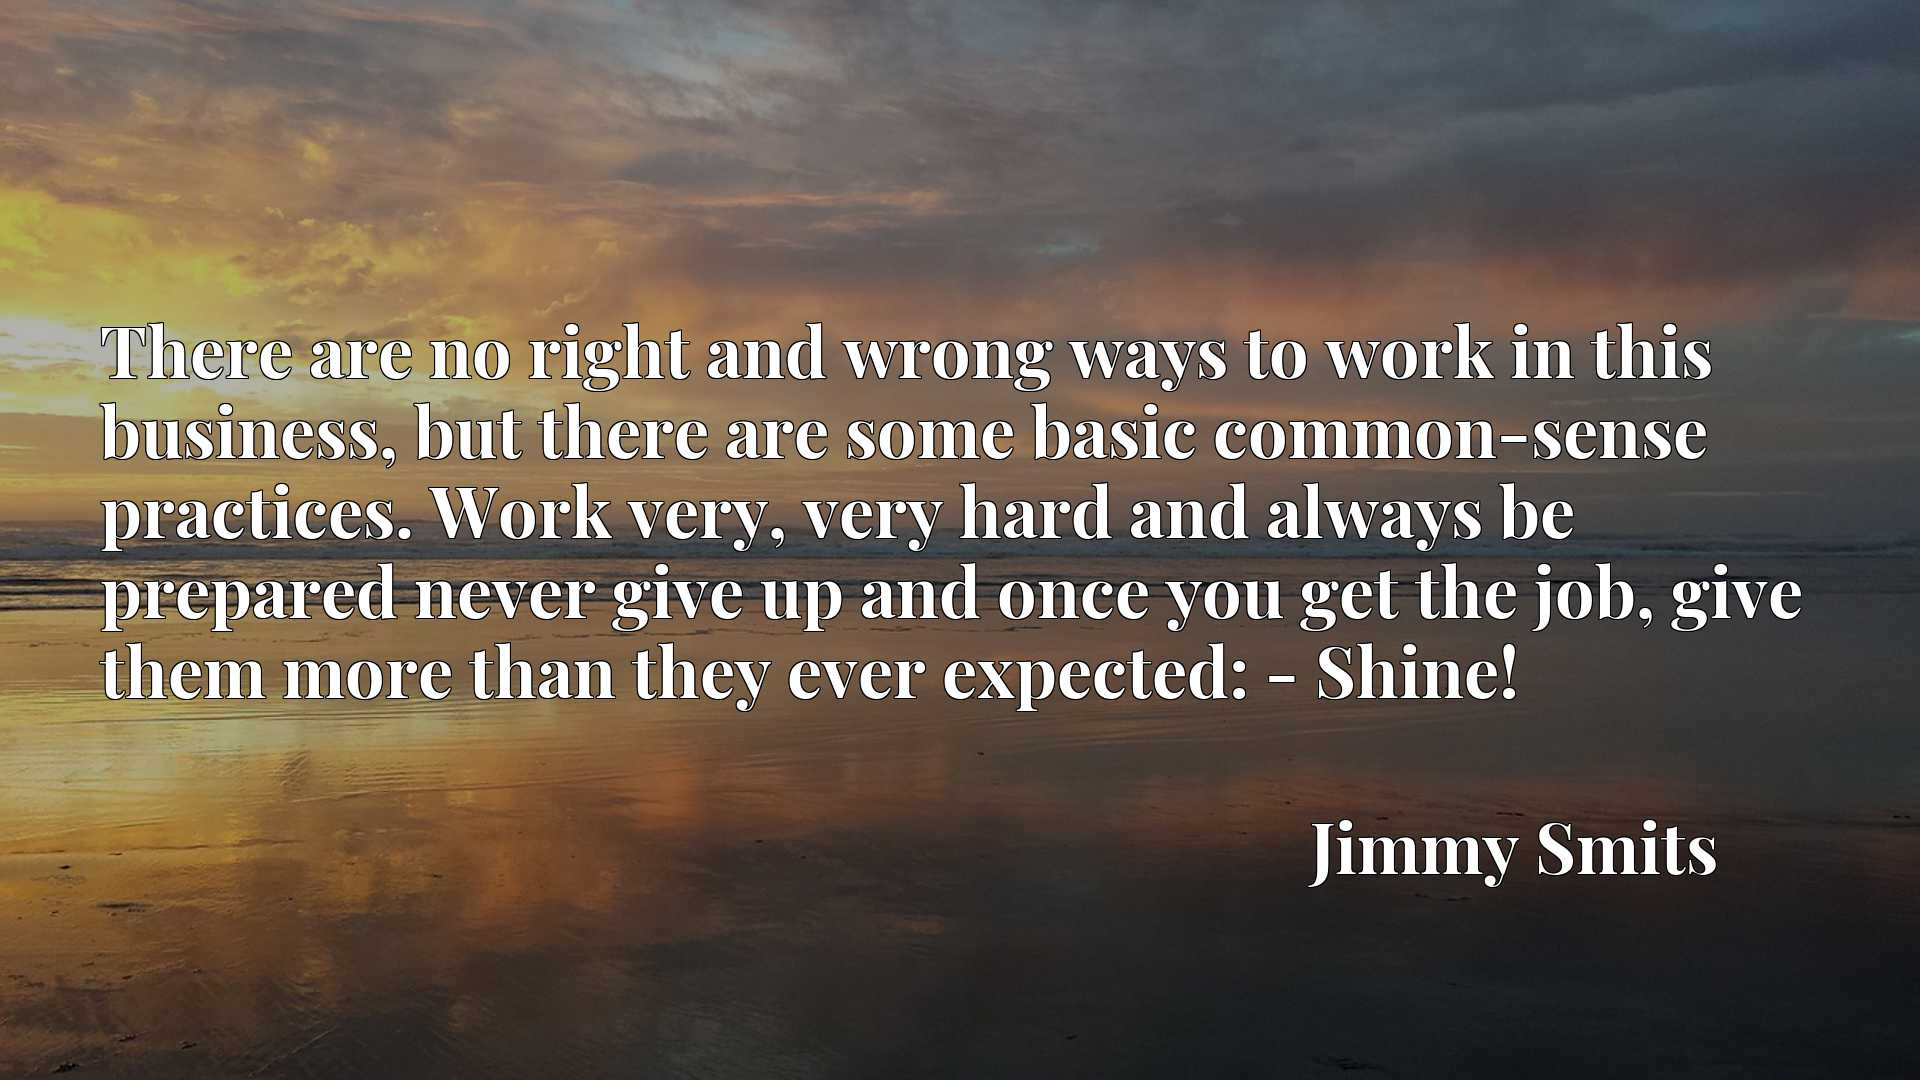 There are no right and wrong ways to work in this business, but there are some basic common-sense practices. Work very, very hard and always be prepared never give up and once you get the job, give them more than they ever expected: - Shine!